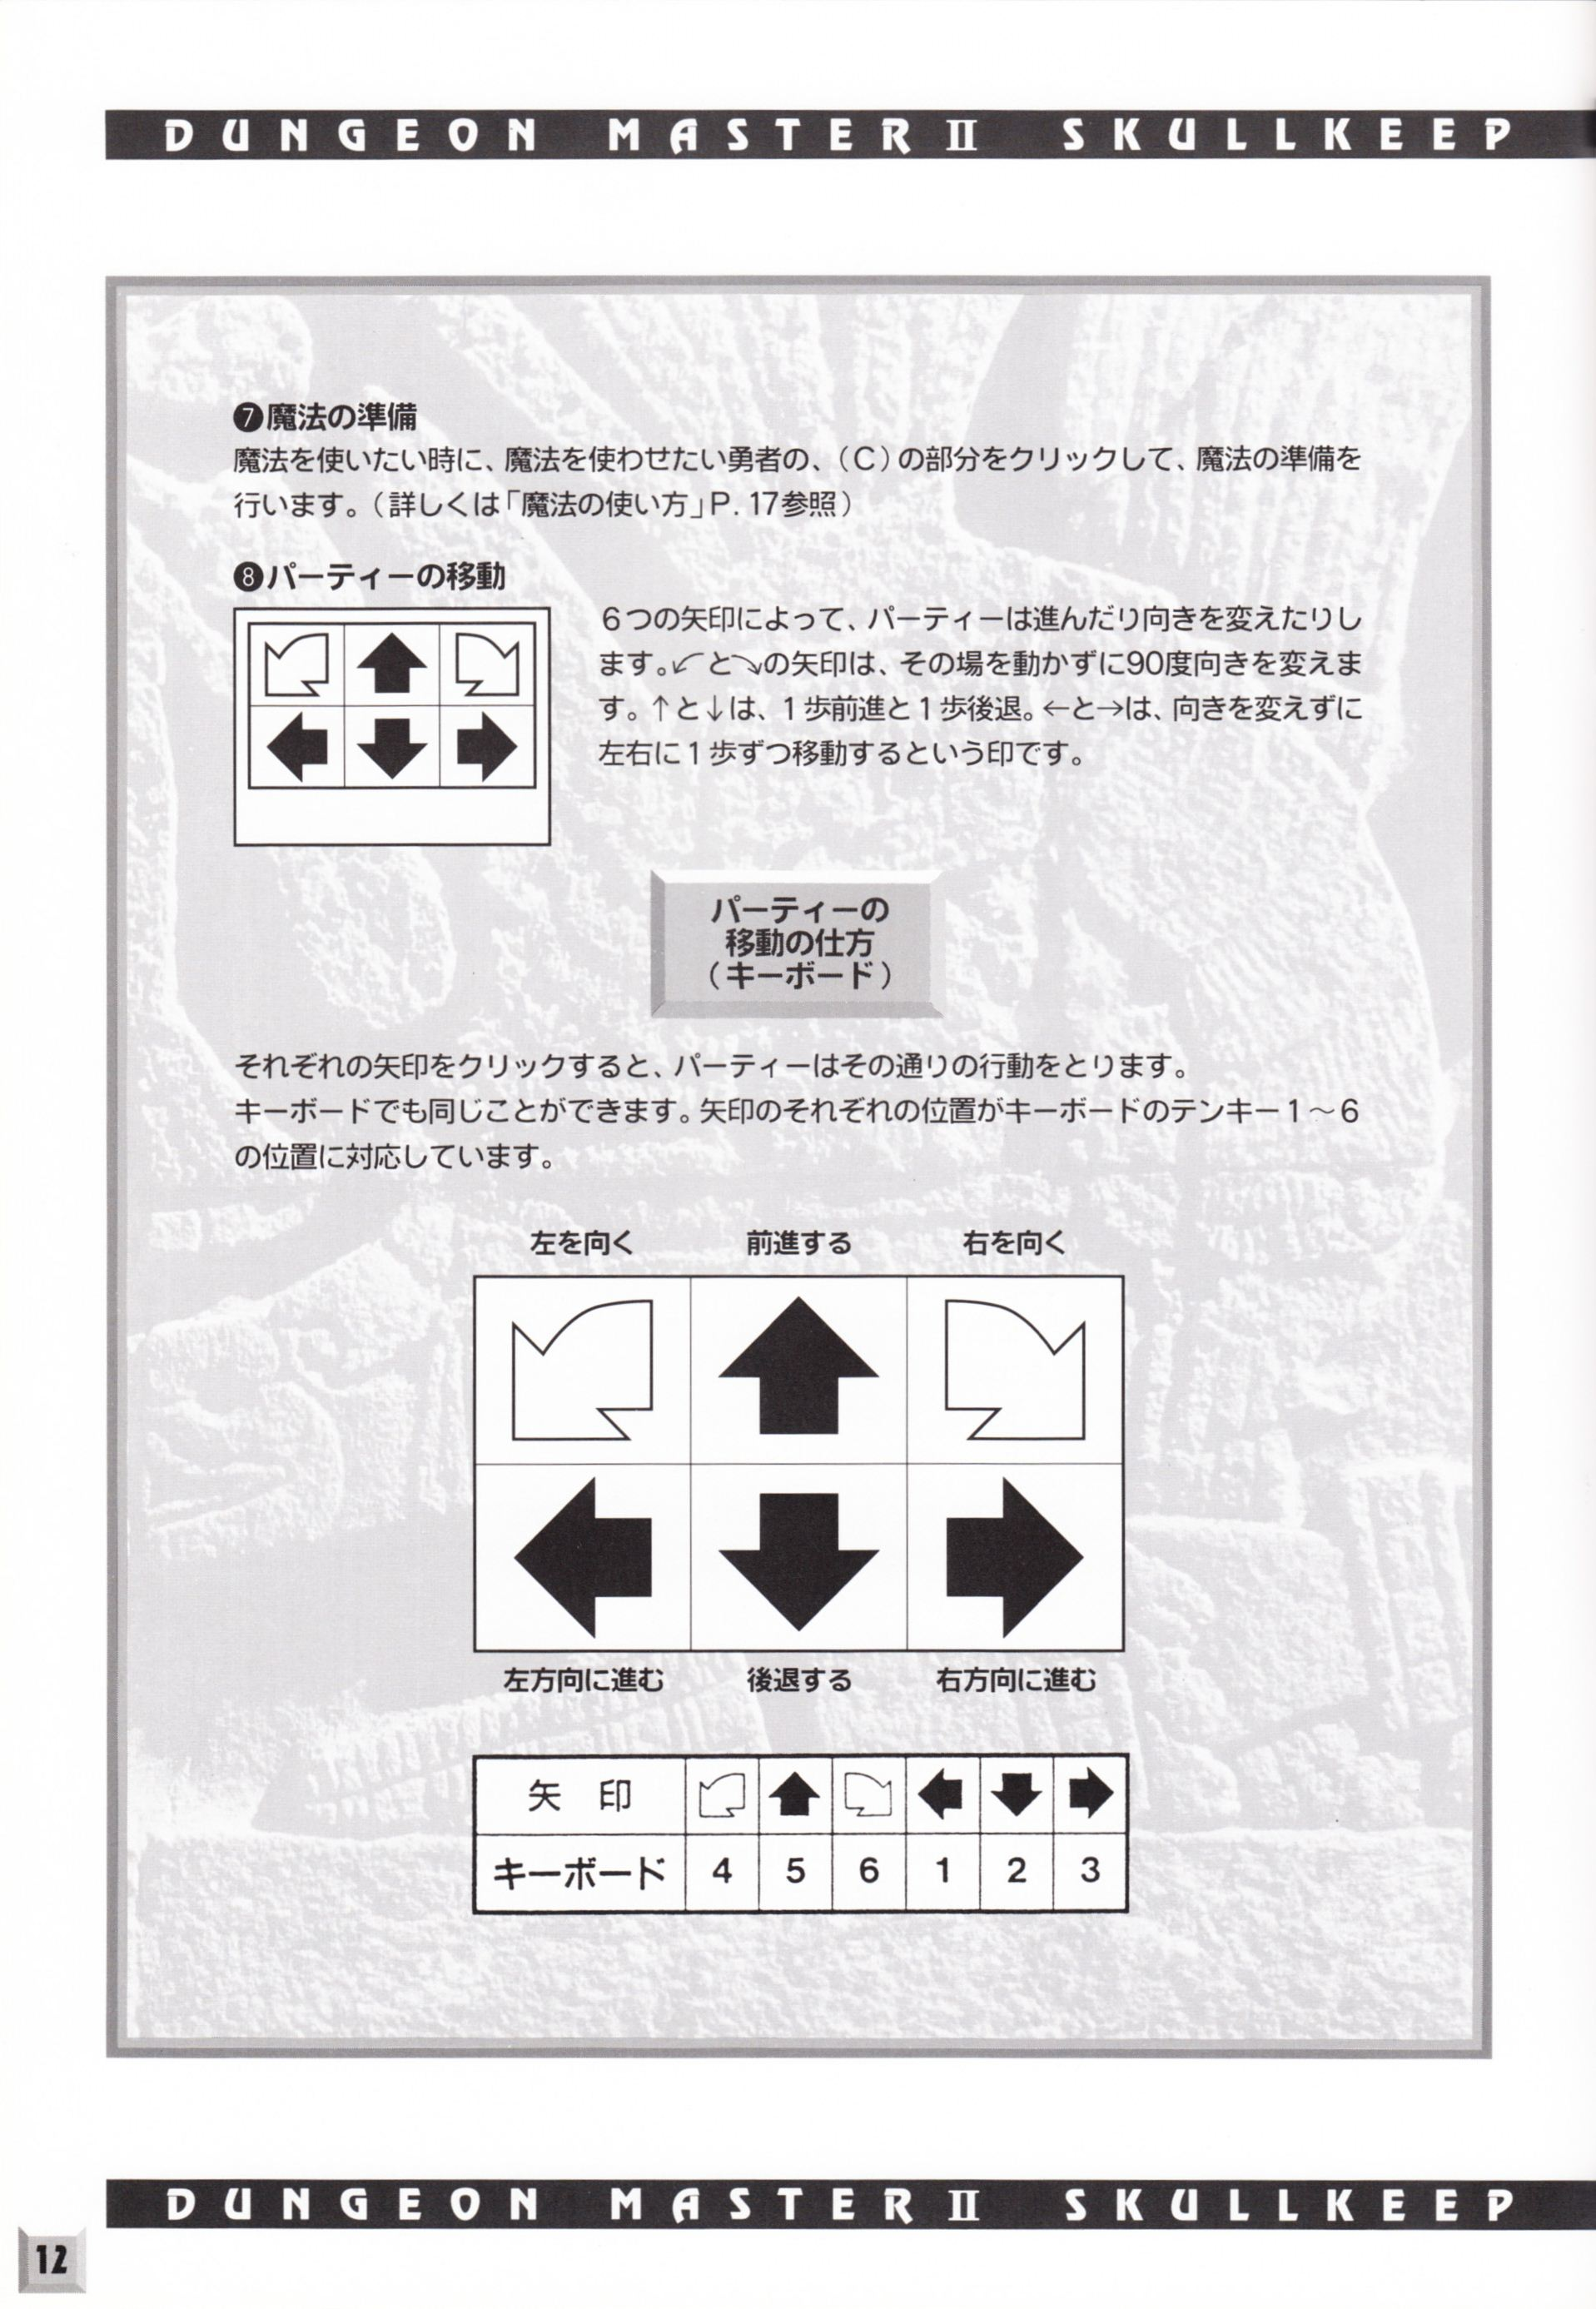 Game - Dungeon Master II - JP - PC-9801 - 3.5-inch - An Operation Manual - Page 014 - Scan